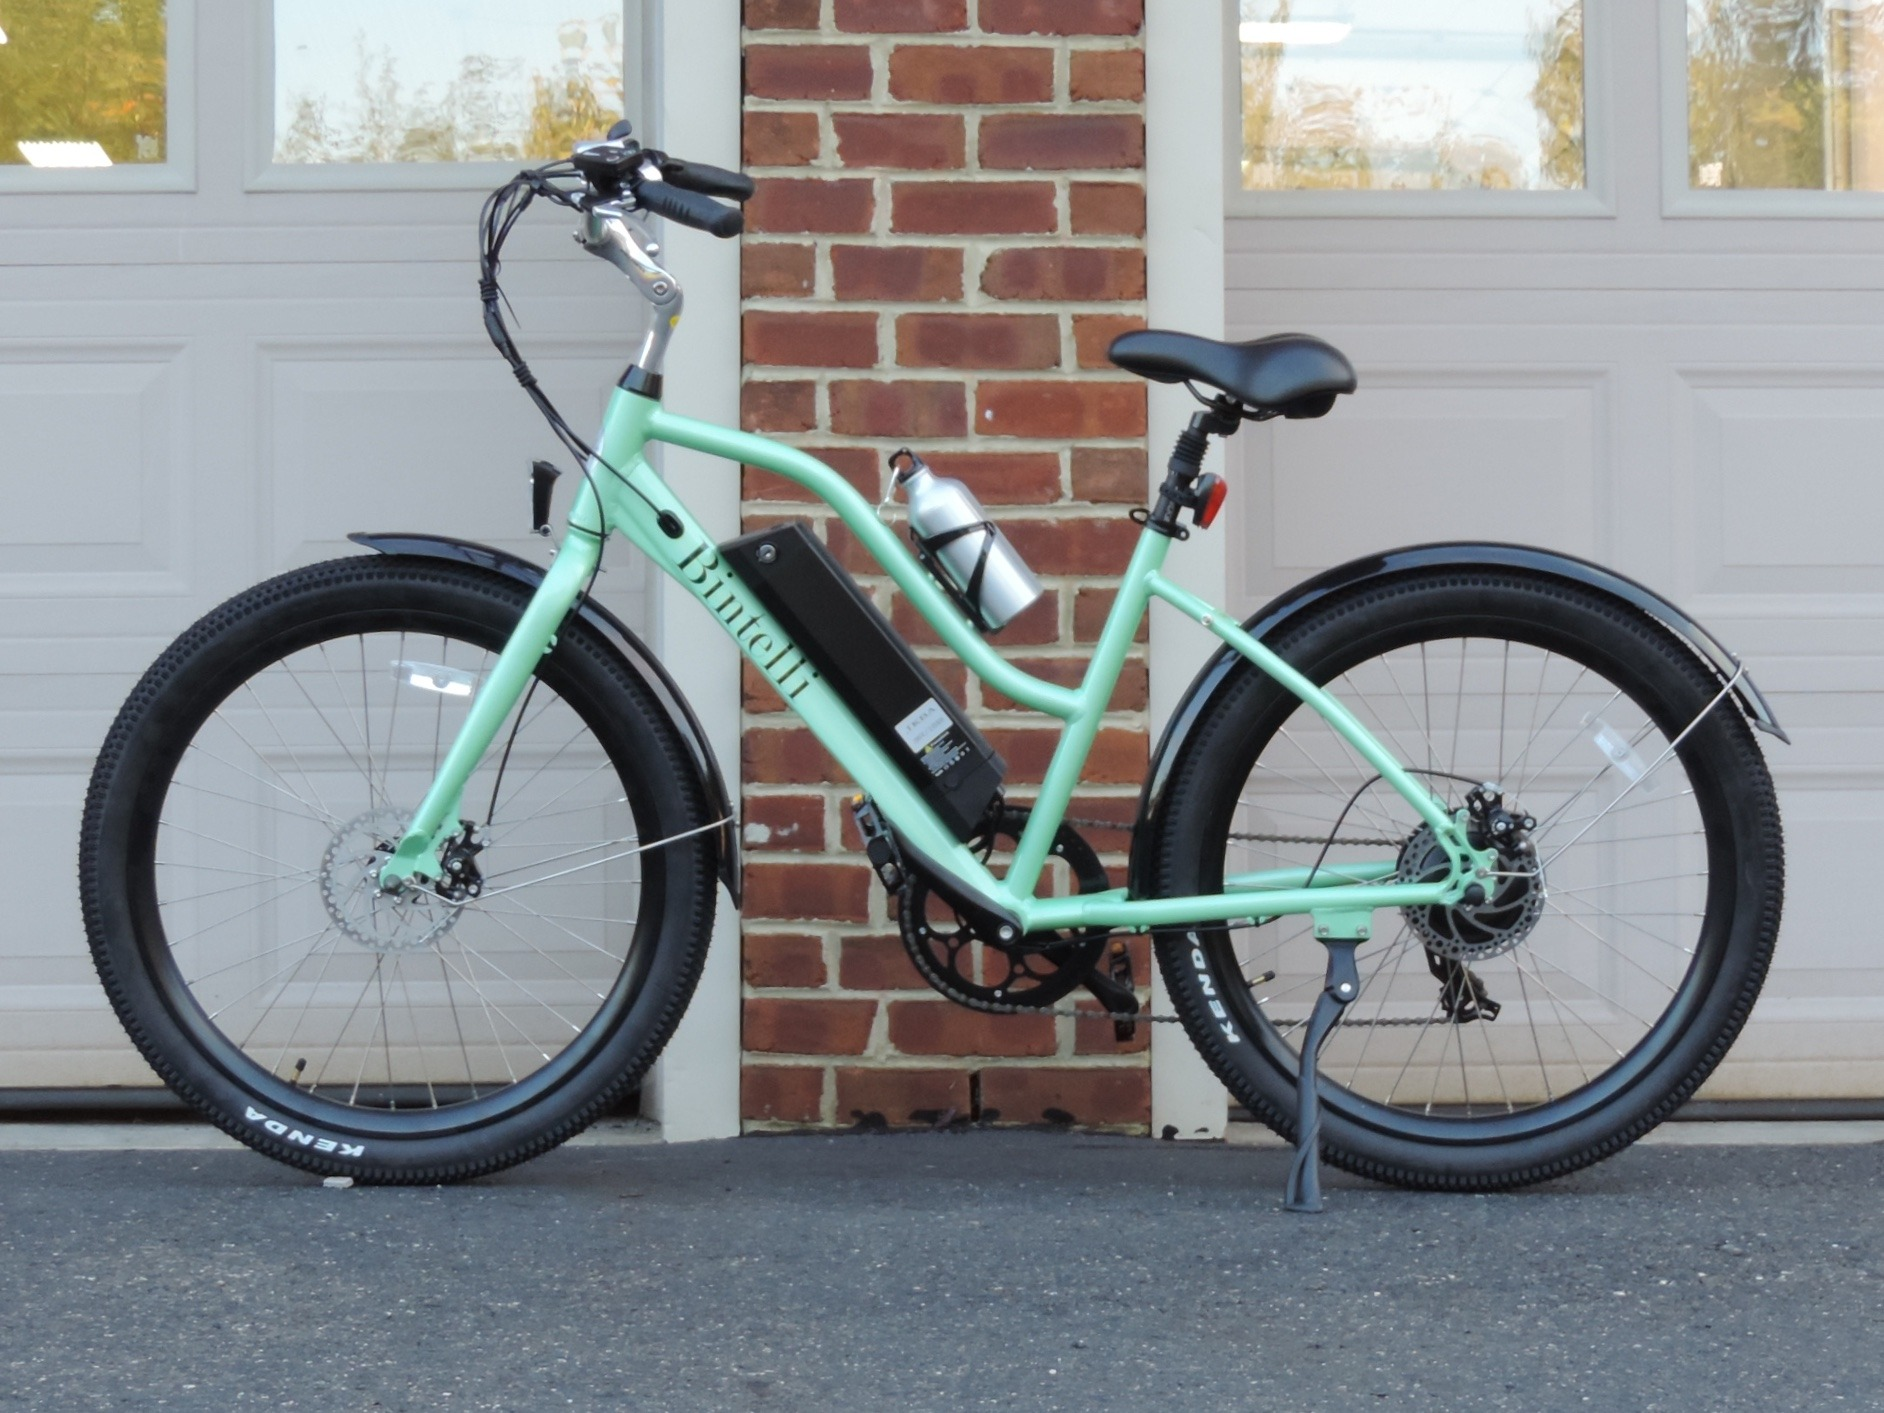 New-2019-Bintelli-B1-Electric-Beach-Cruiser